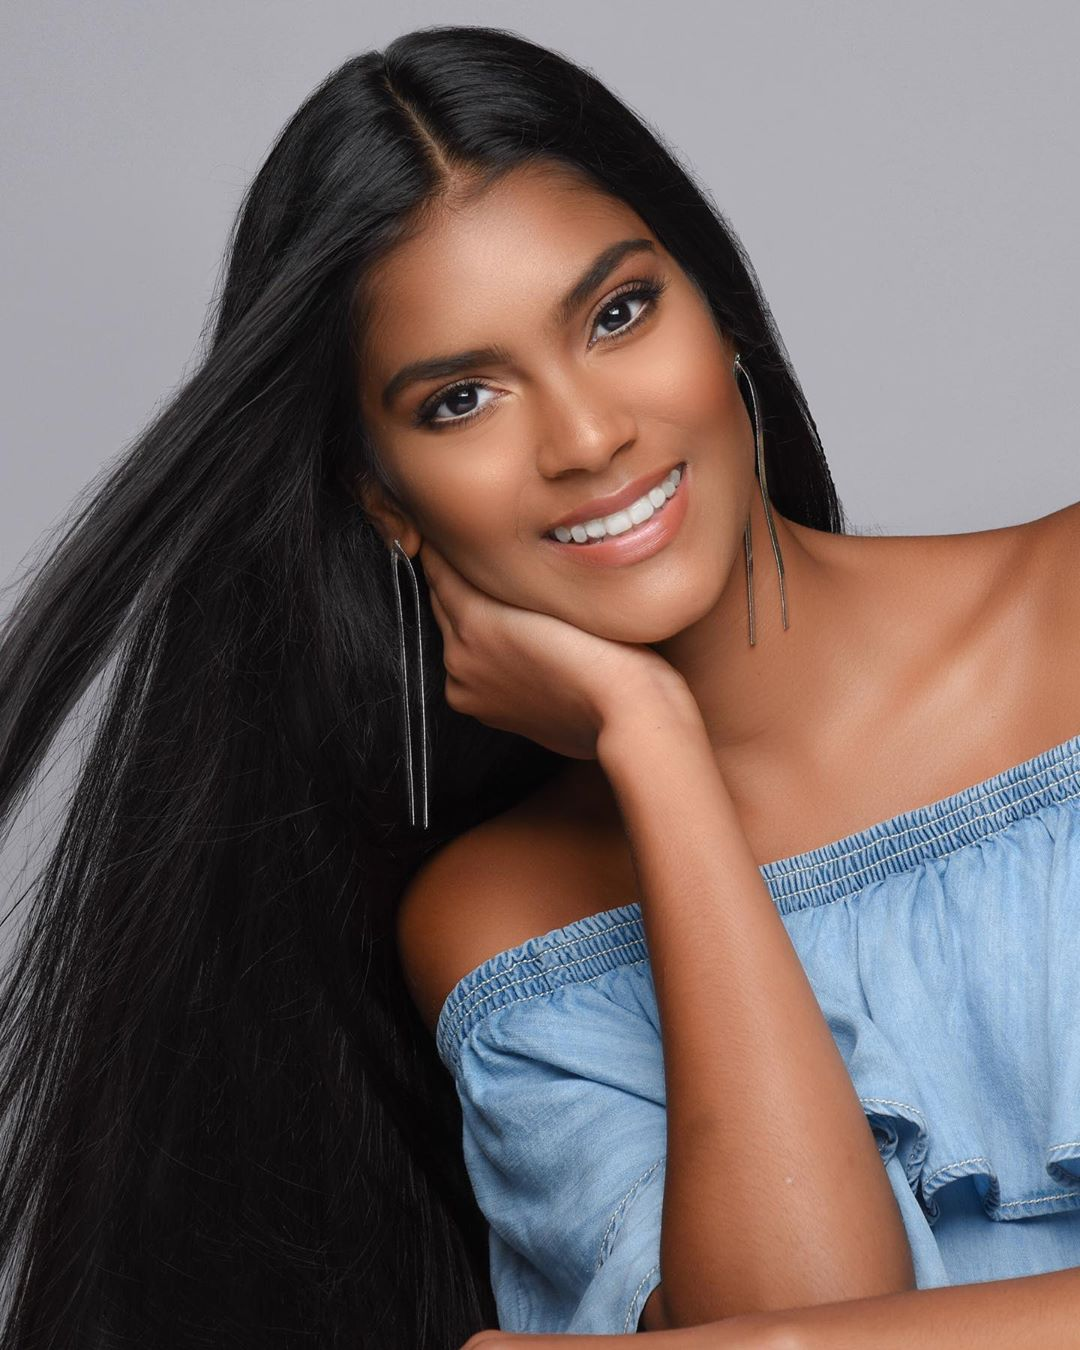 candidatas a miss teen usa 2020. final: 7 nov. preliminary competition a partir pag. 21. - Página 3 Rczpo84g